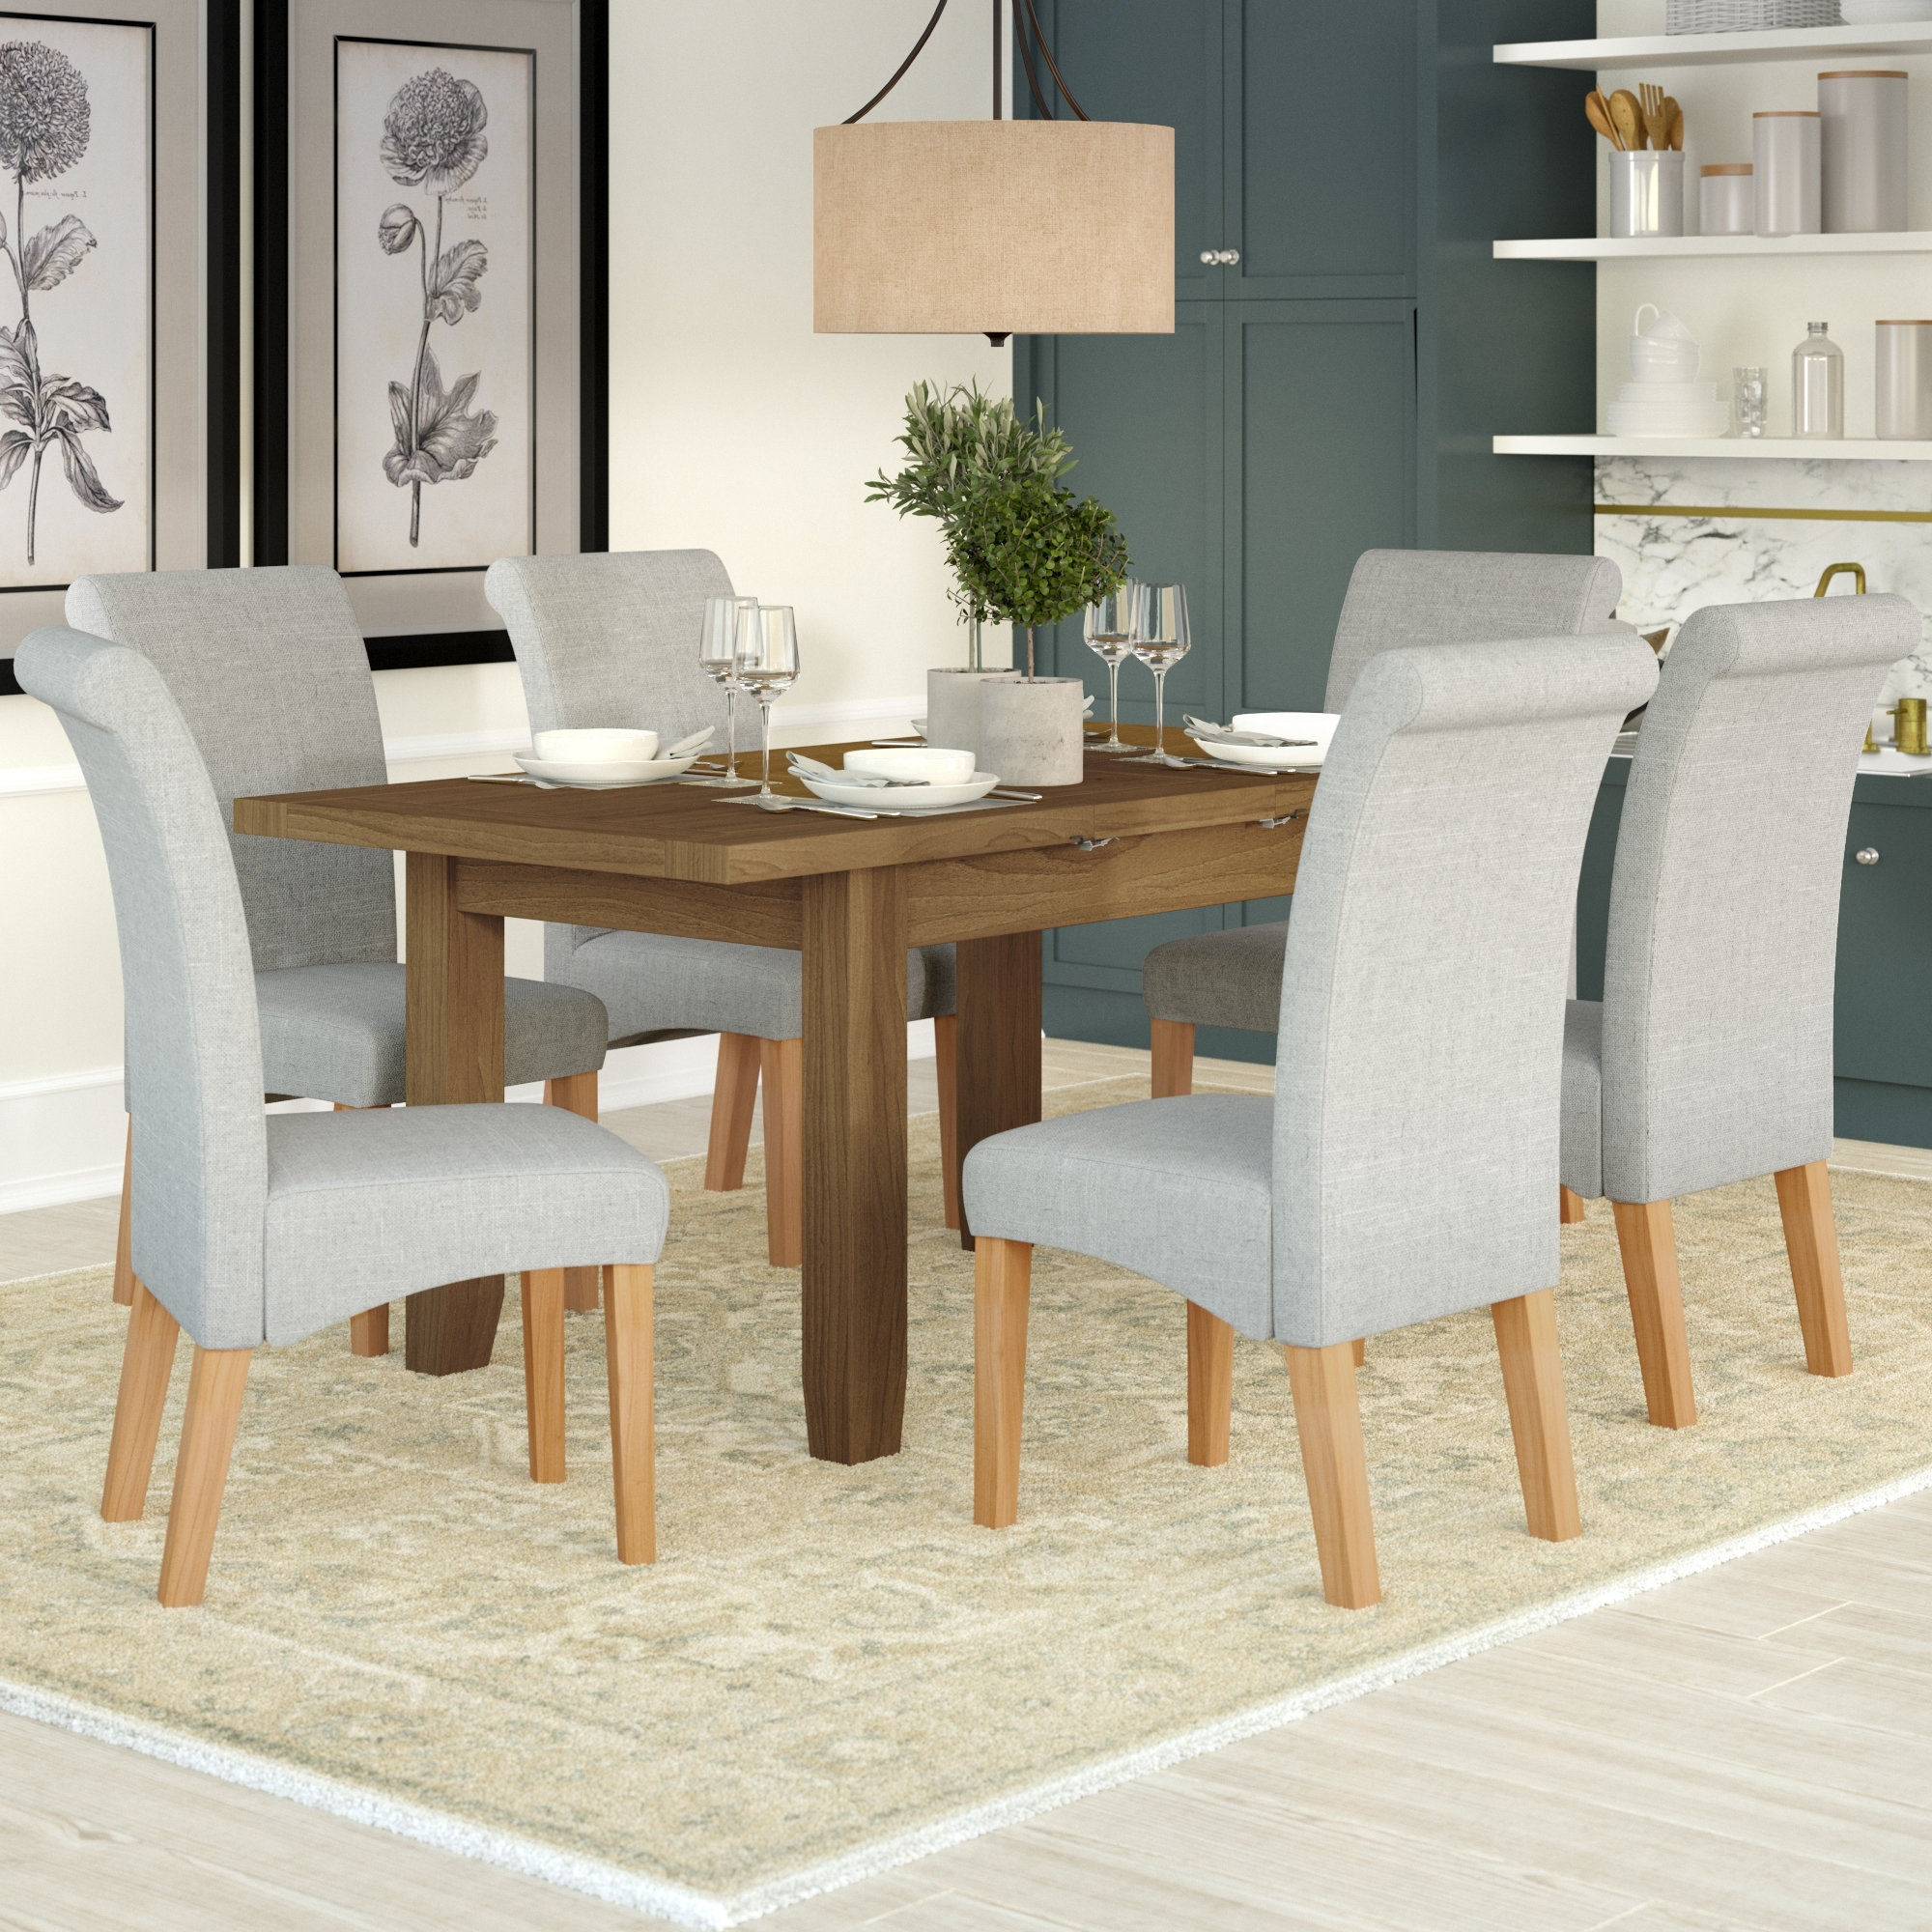 Well Known Extendable Dining Tables With 6 Chairs Pertaining To Three Posts Berwick Extendable Dining Table And 6 Chairs & Reviews (View 8 of 25)